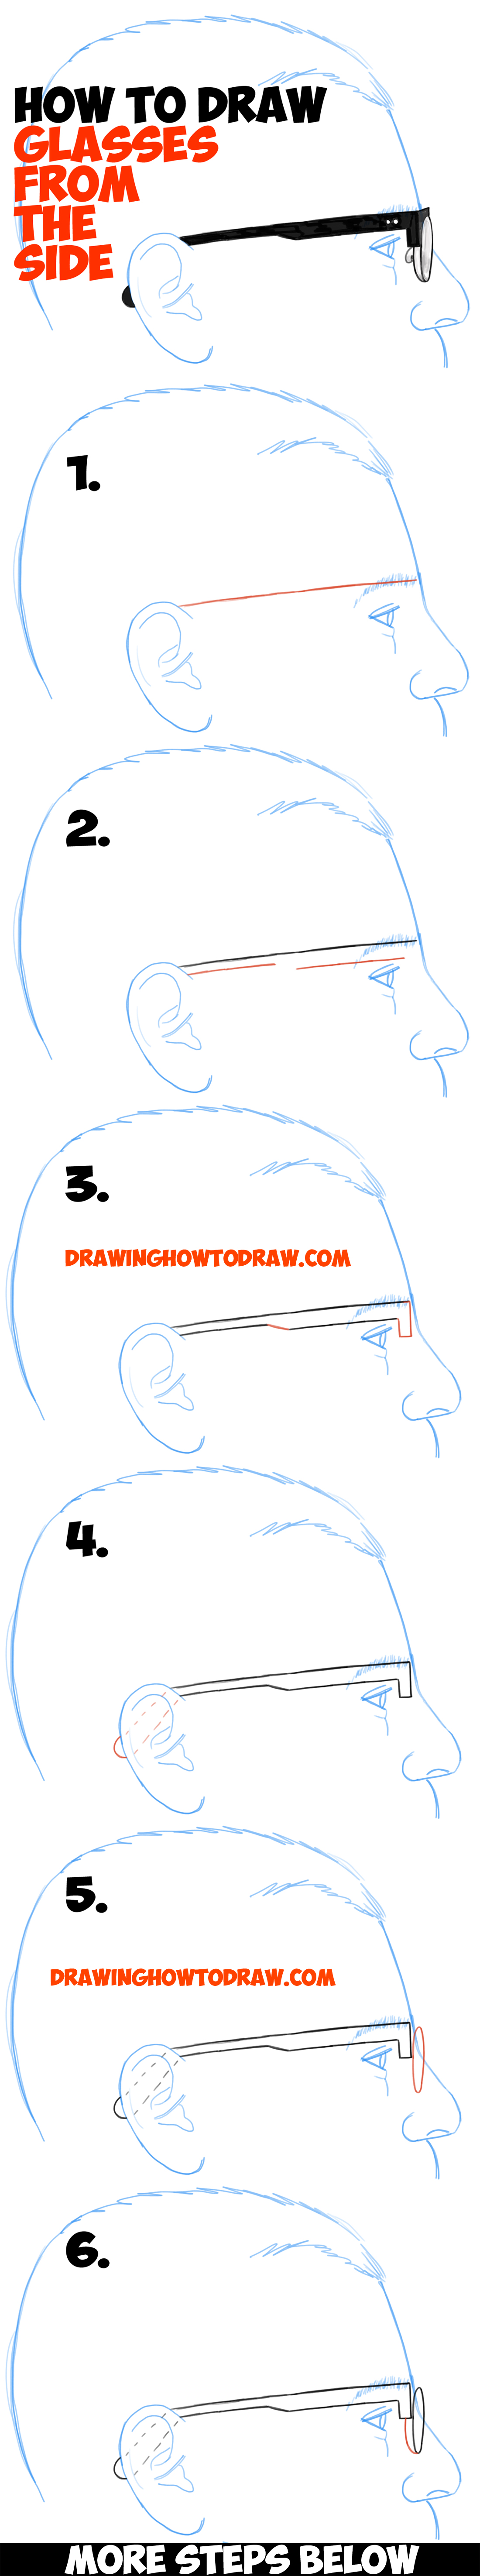 How To Draw Glasses On A Person's Face From The Side Angle View (profile)